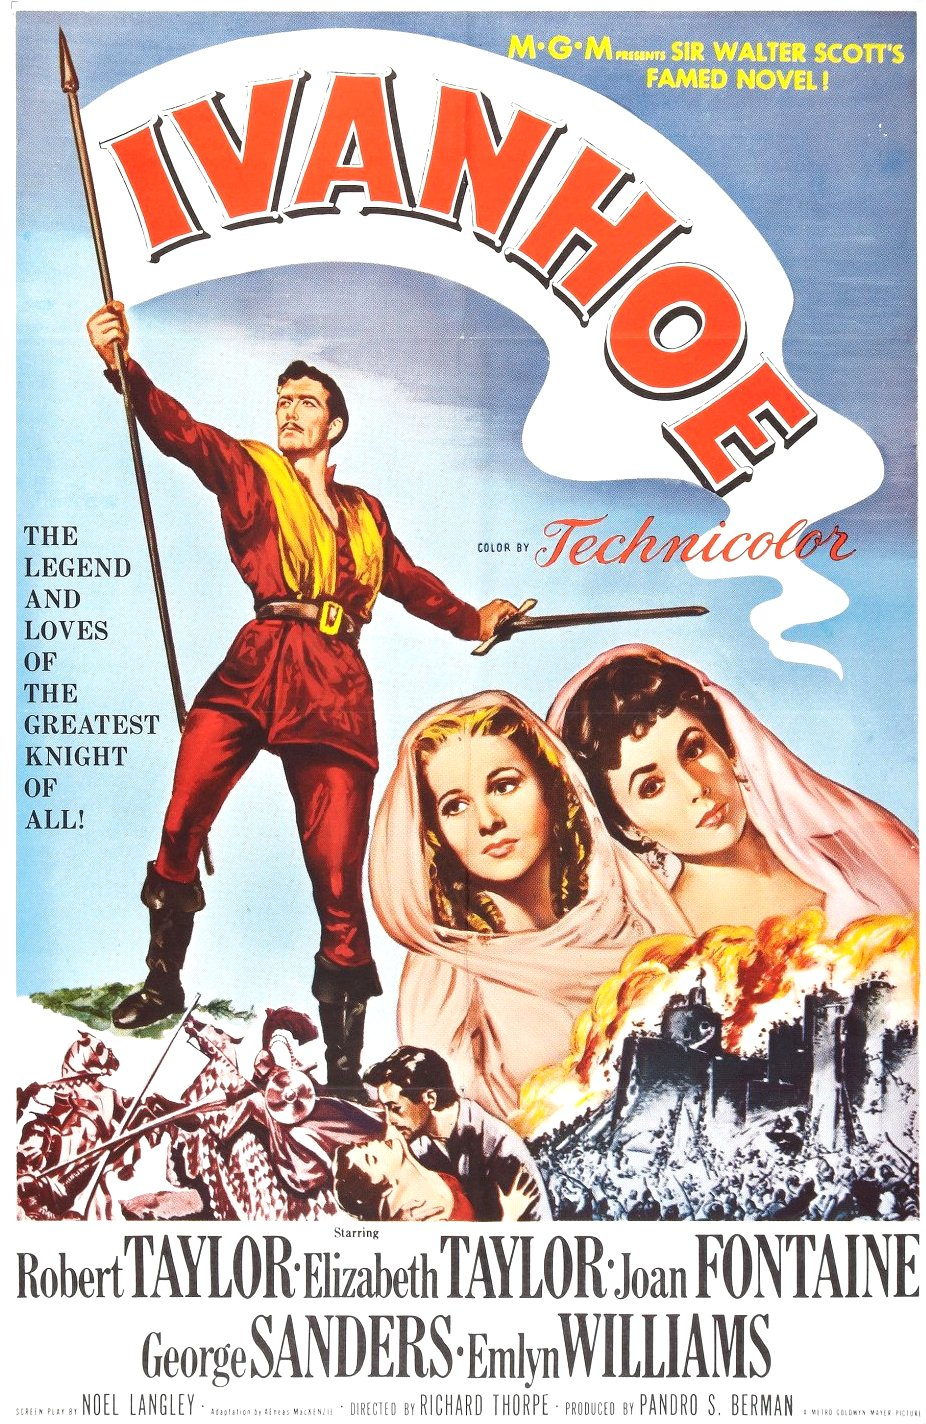 Ivanhoe (1952) Movie Poster from http://www.impawards.com/1952/posters/ivanhoe_xlg.jpg